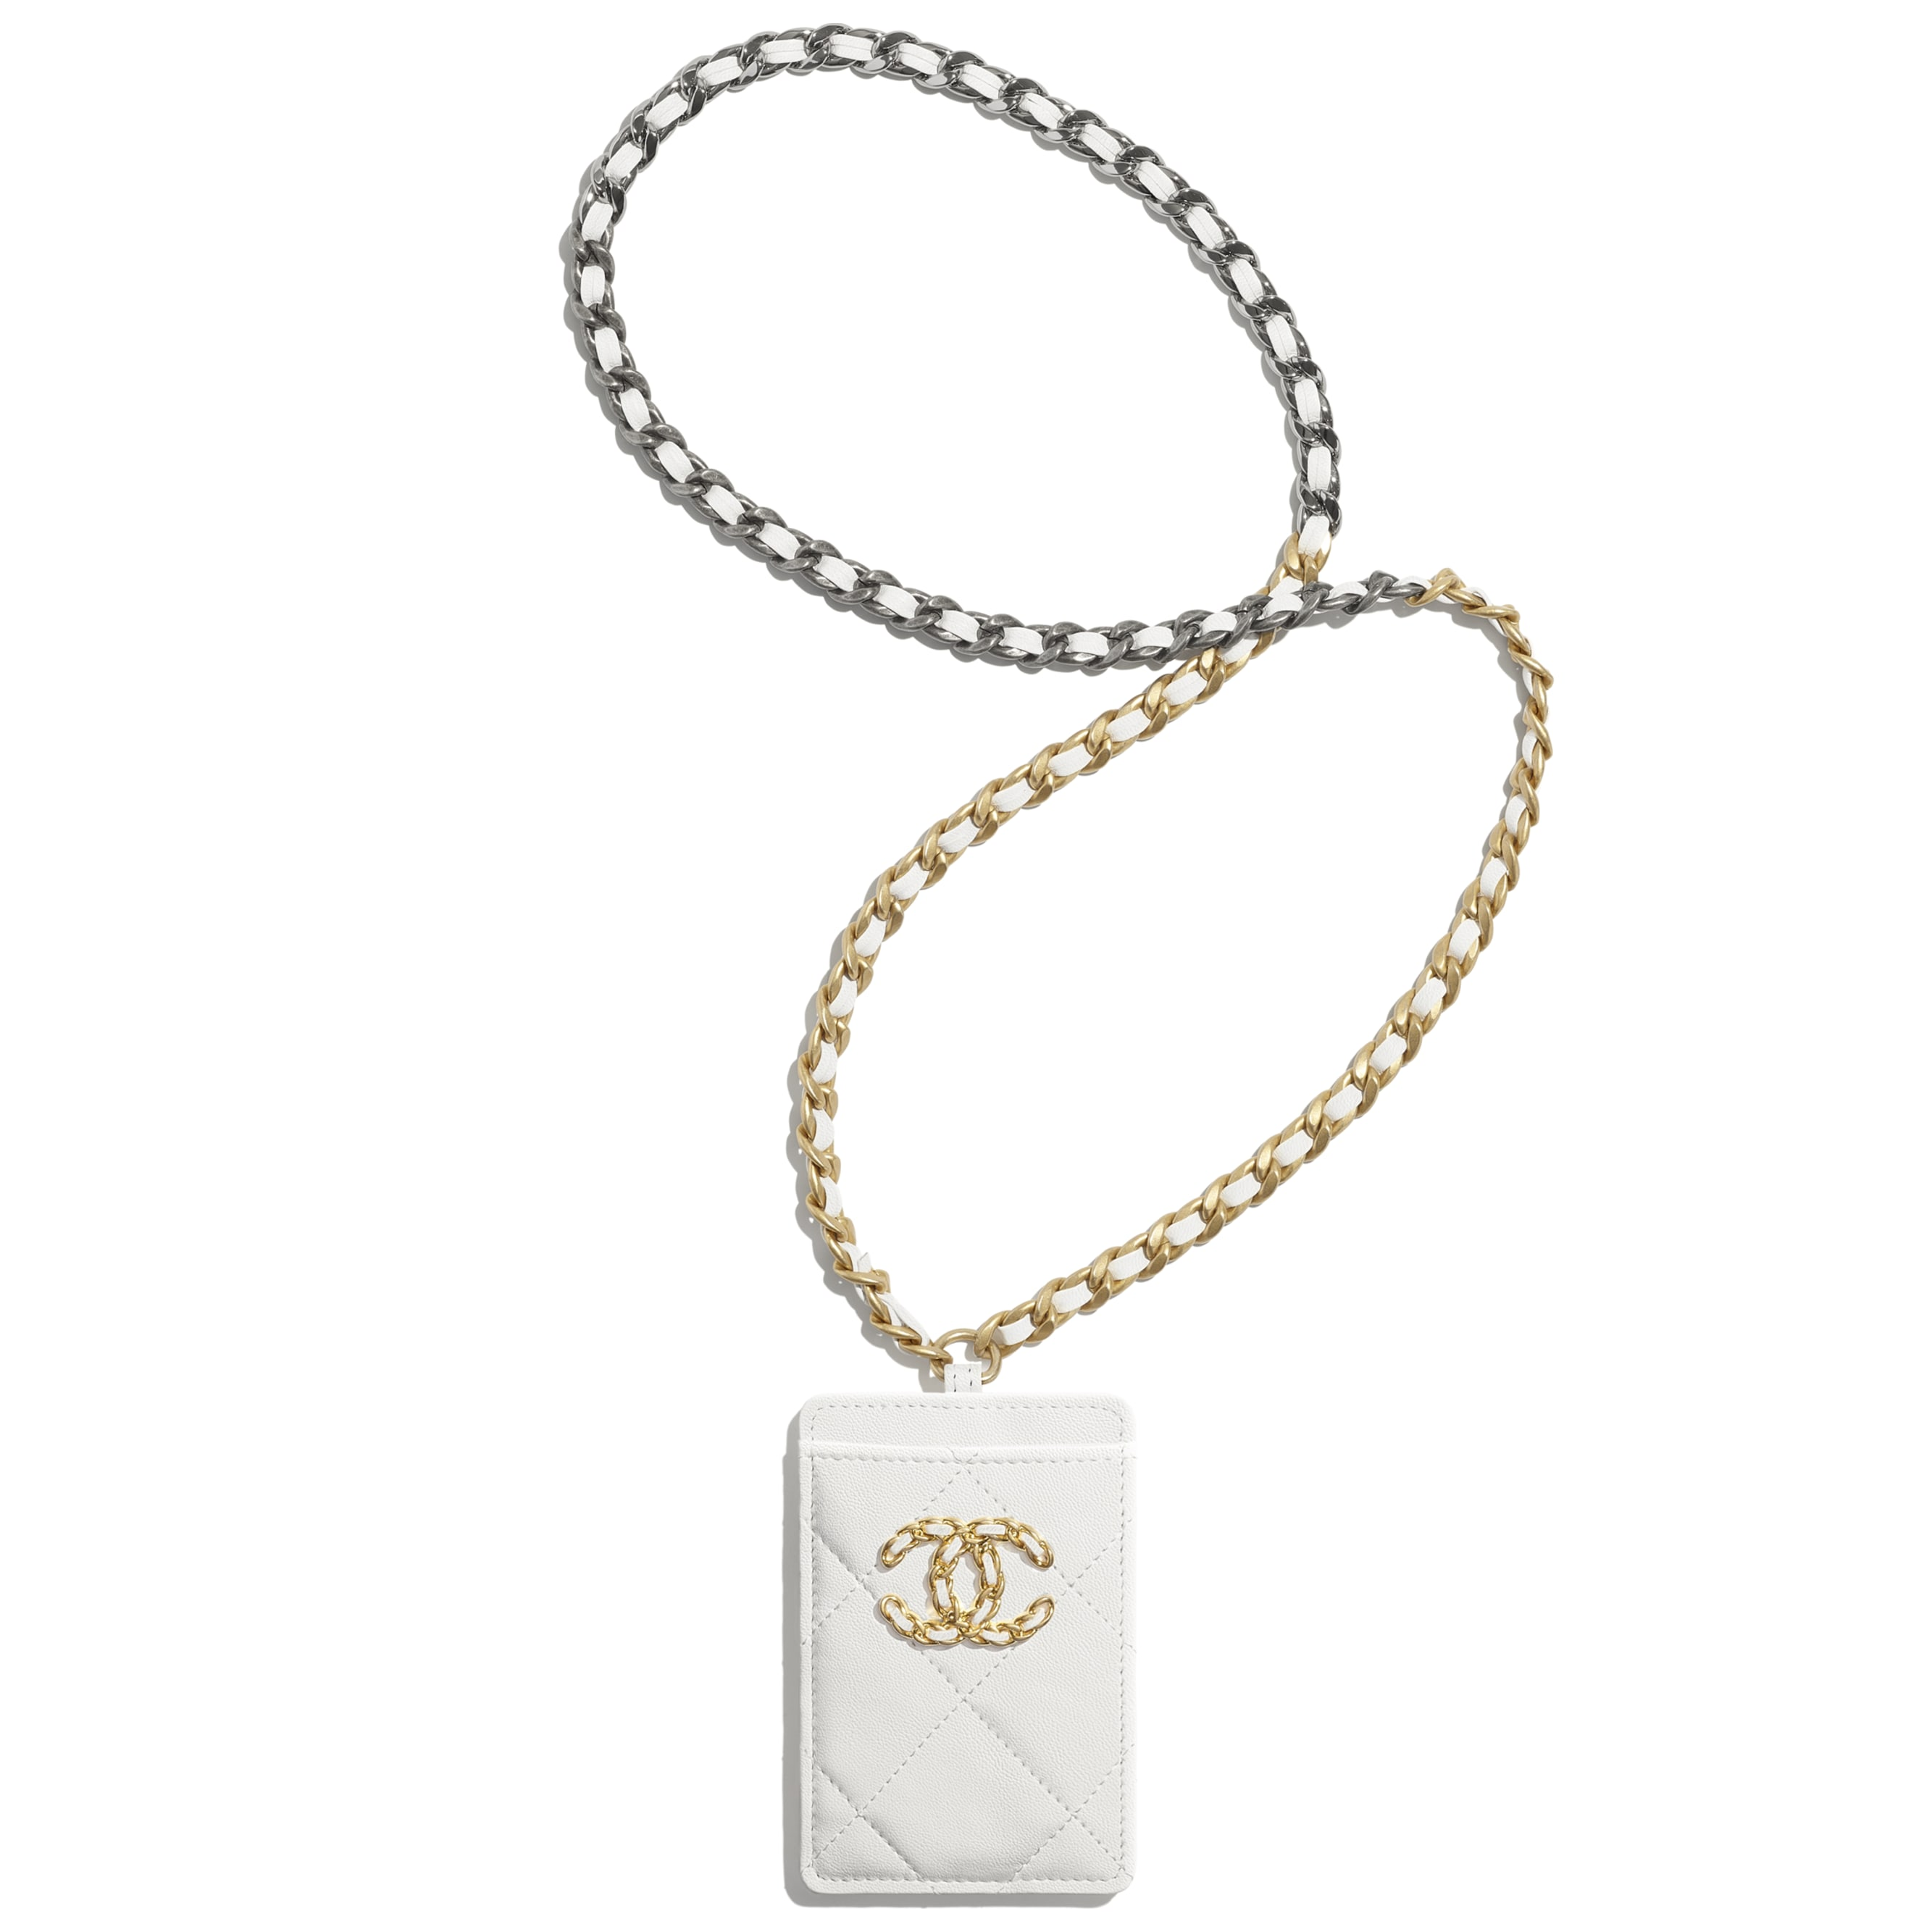 CHANEL 19 Badge Holder - White - Lambskin, Gold-Tone, Silver-Tone & Ruthenium-Finish Metal - CHANEL - Default view - see standard sized version